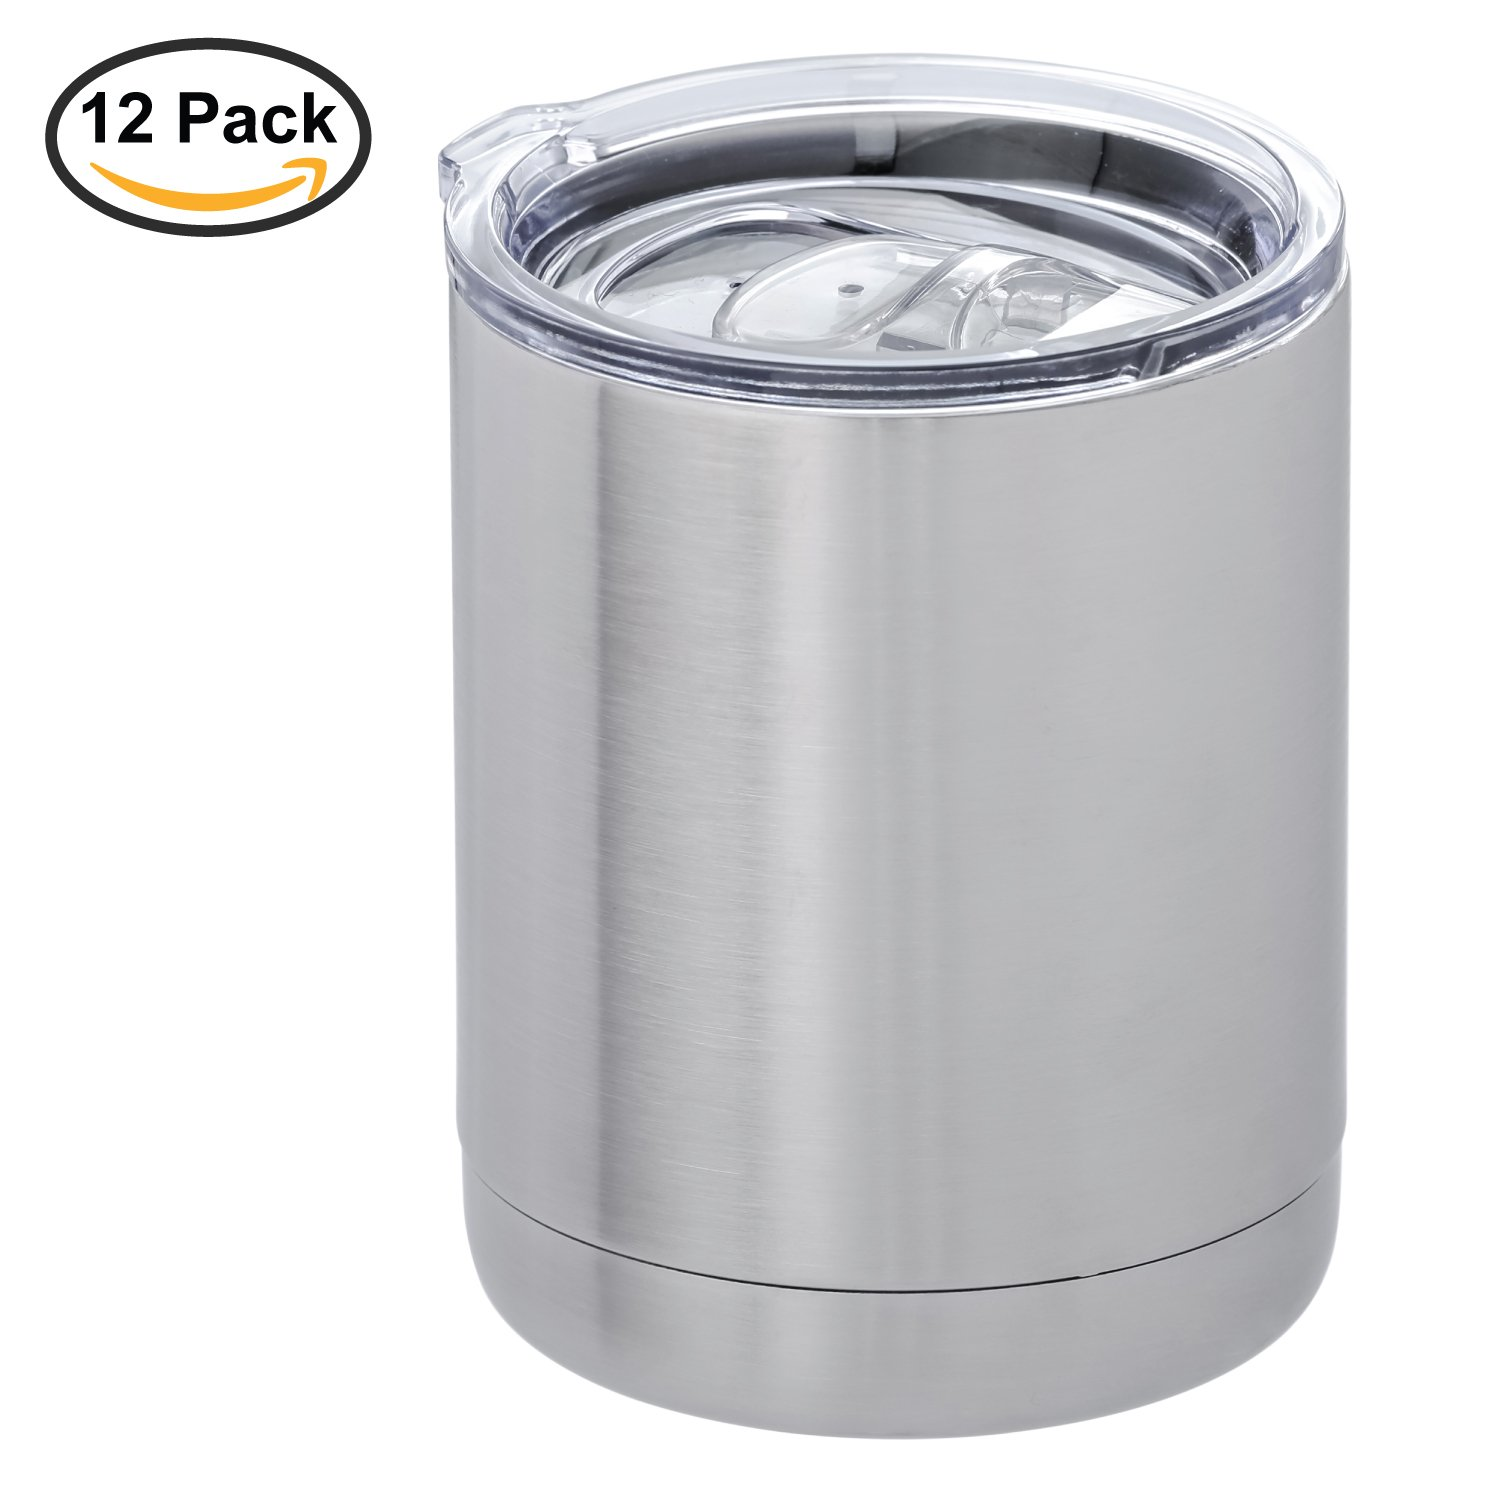 Thirsty Rhino Gambil, 10 oz Stainless Steel Lowball Tumbler with Lid, Double Wall Vacuum Insulated, Silver (Set of 12)